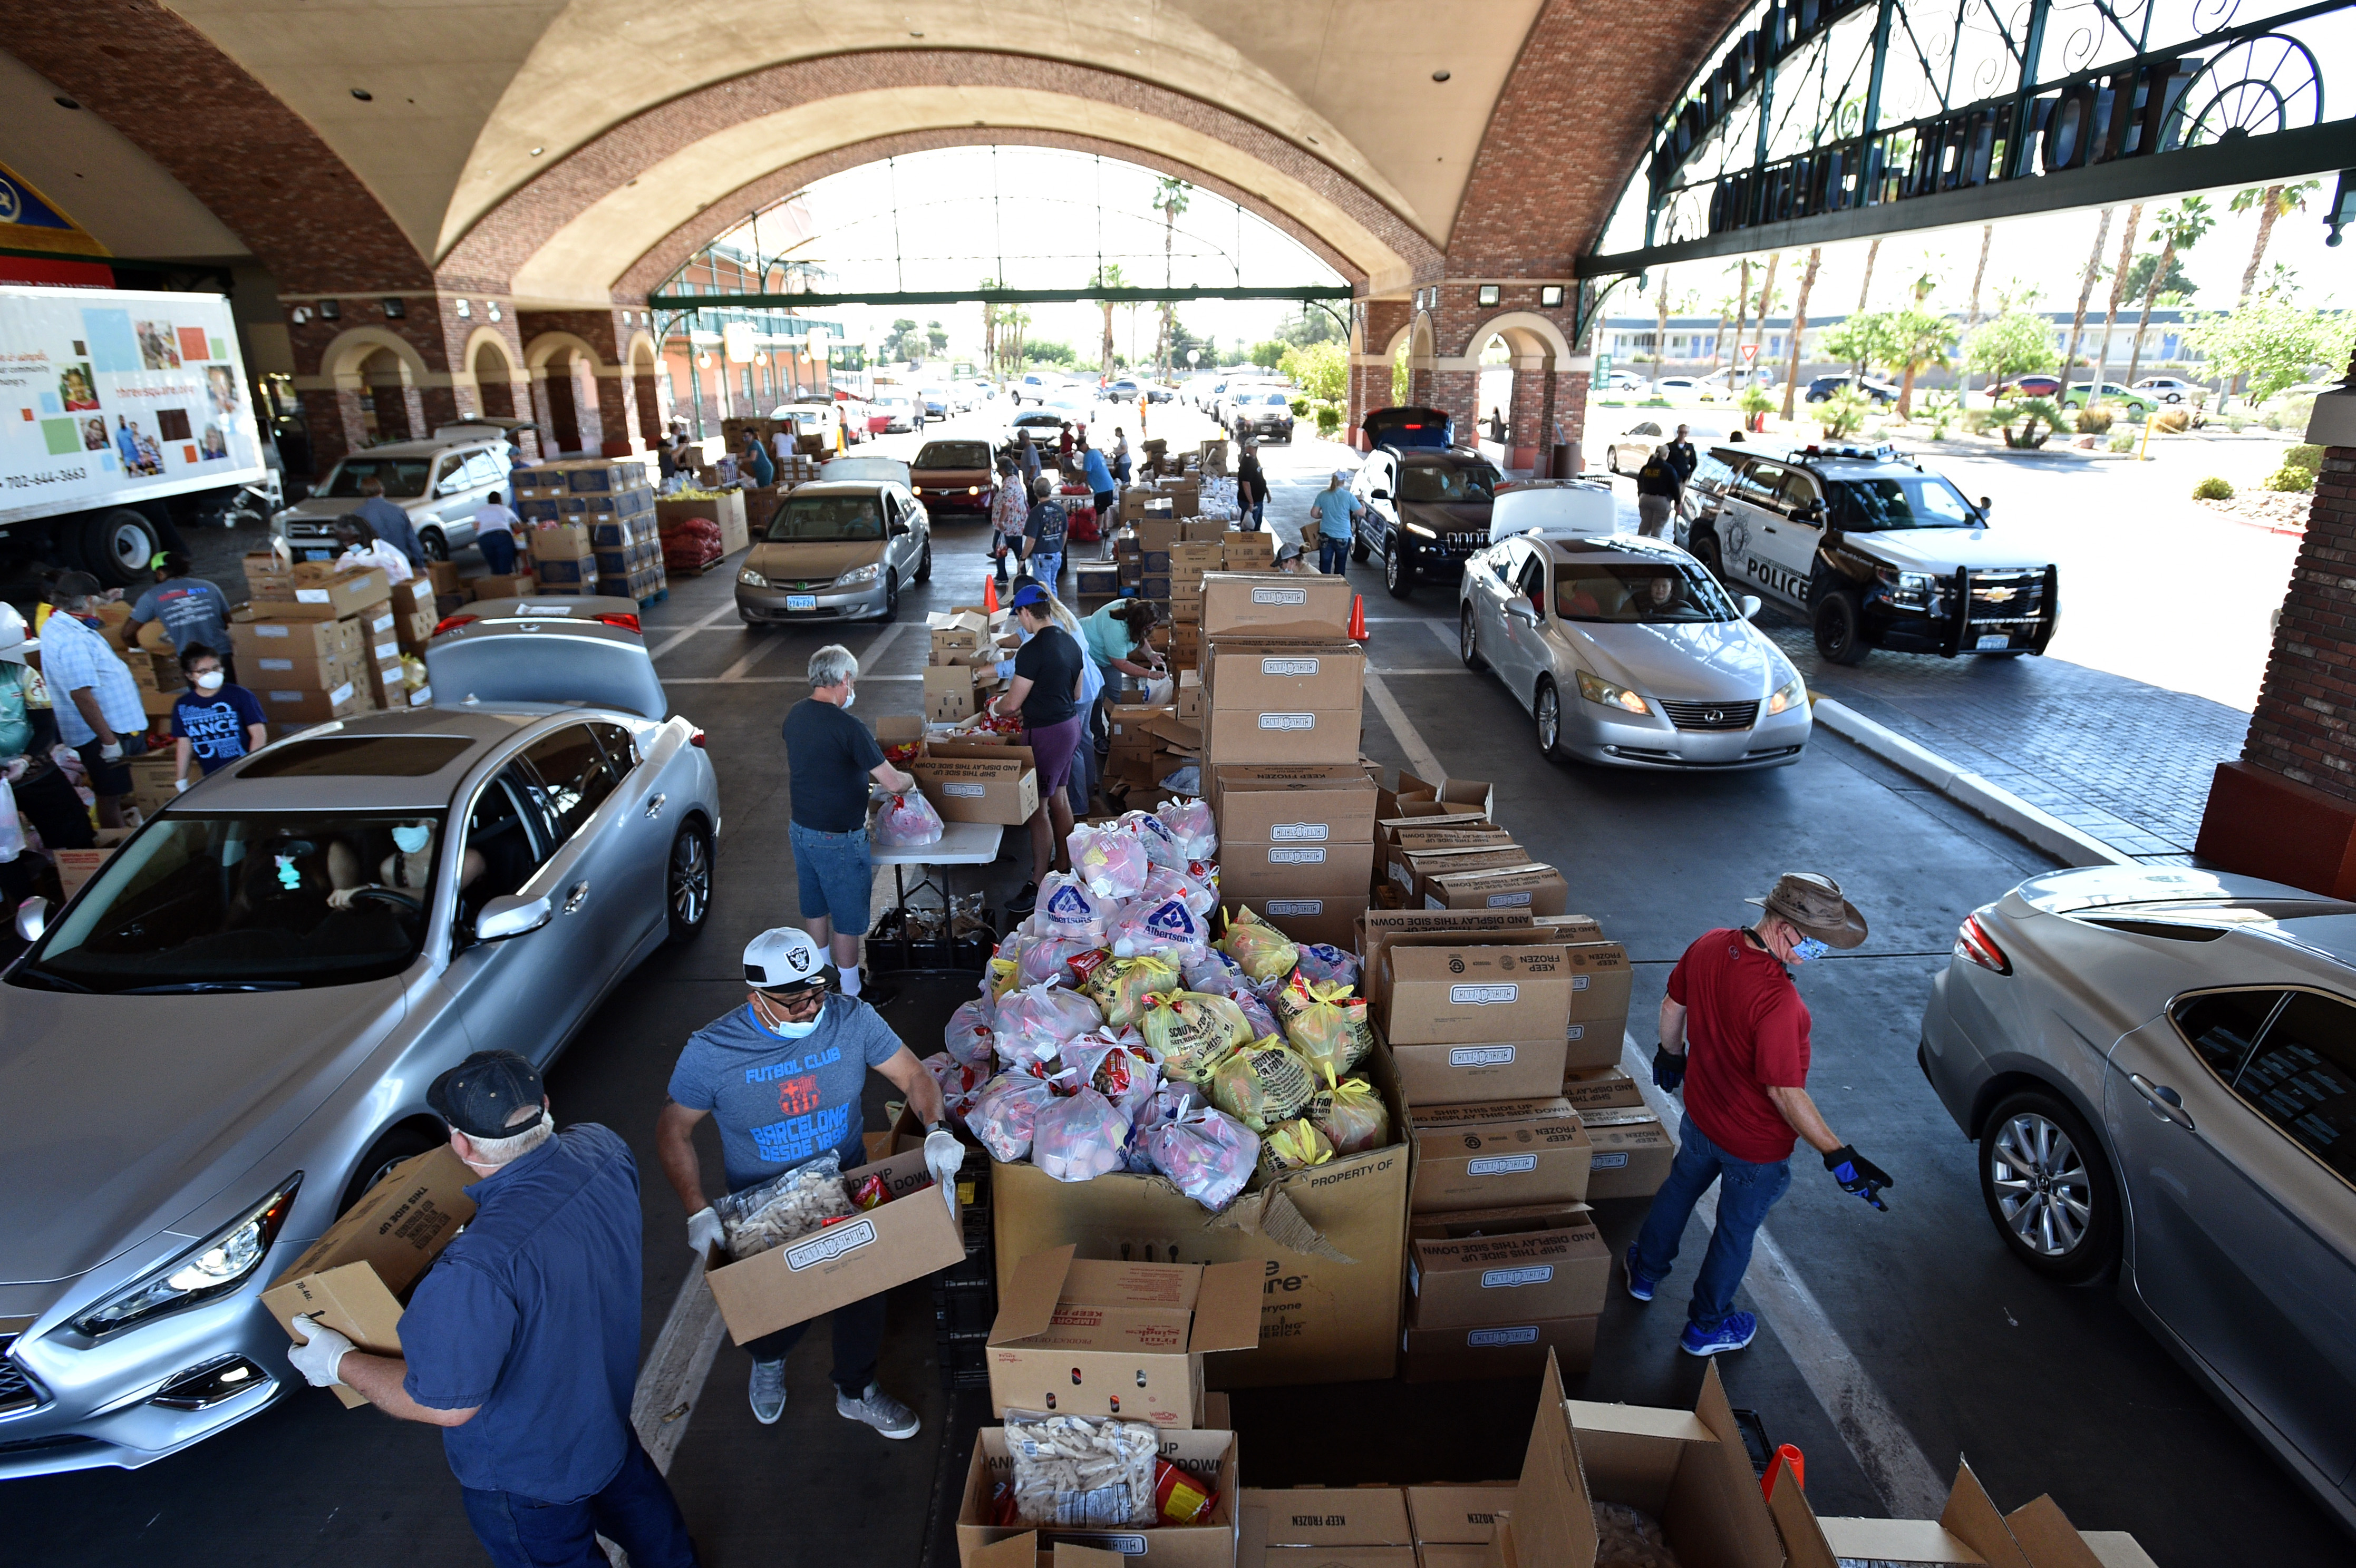 Volunteers give out groceries at a drive-thru Three Square Food Bank emergency food distribution site at Boulder Station Hotel & Casino in response to an increase in demand amid the coronavirus pandemic on April 29, 2020 in Las Vegas, Nevada. - Three Square is currently operating dozens of emergency distribution sites at various times and dates throughout Southern Nevada to assist a growing number of people, many recently unemployed. (Photo by David Becker / AFP) (Photo by DAVID BECKER/AFP via Getty Images)Volunteers give out groceries at a drive-thru Three Square Food Bank emergency food distribution site at Boulder Station Hotel & Casino in response to an increase in demand amid the coronavirus pandemic on April 29, 2020 in Las Vegas, Nevada. - Three Square is currently operating dozens of emergency distribution sites at various times and dates throughout Southern Nevada to assist a growing number of people, many recently unemployed. (Photo by DAVID BECKER/AFP via Getty Images)